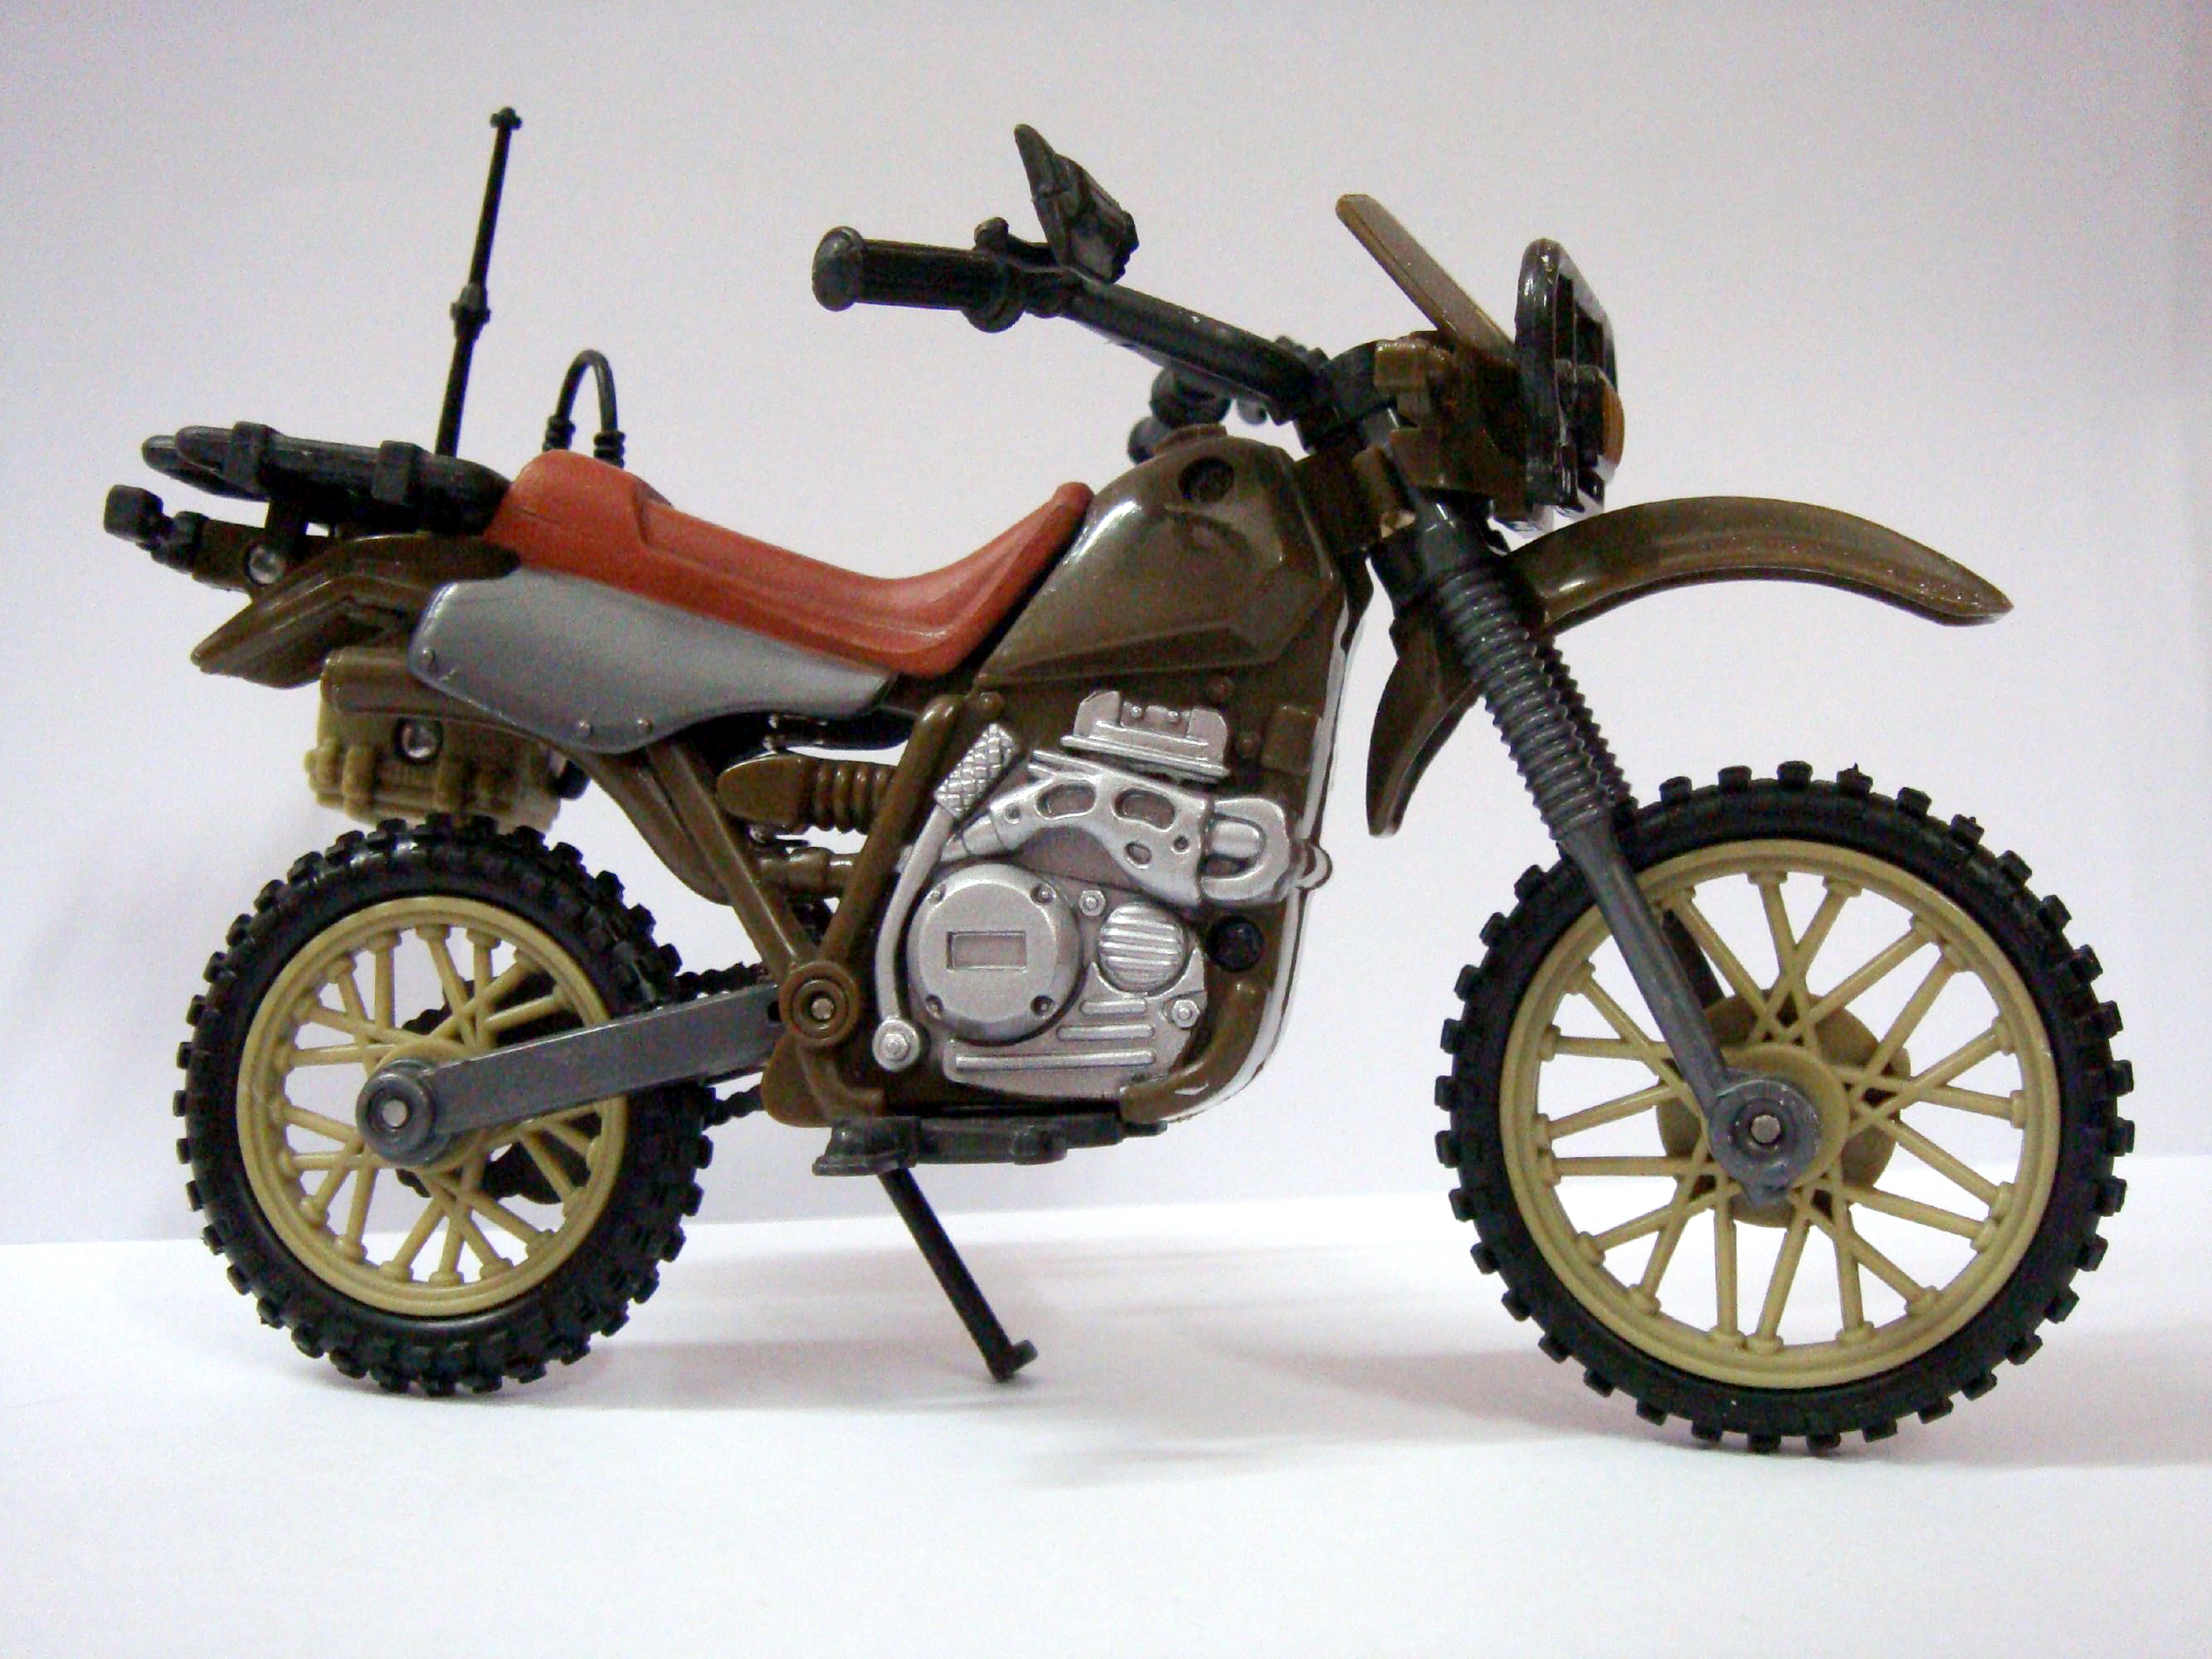 Bike, Crosser, Dirtbike, Miniature, Motorcycle, HQ Photo